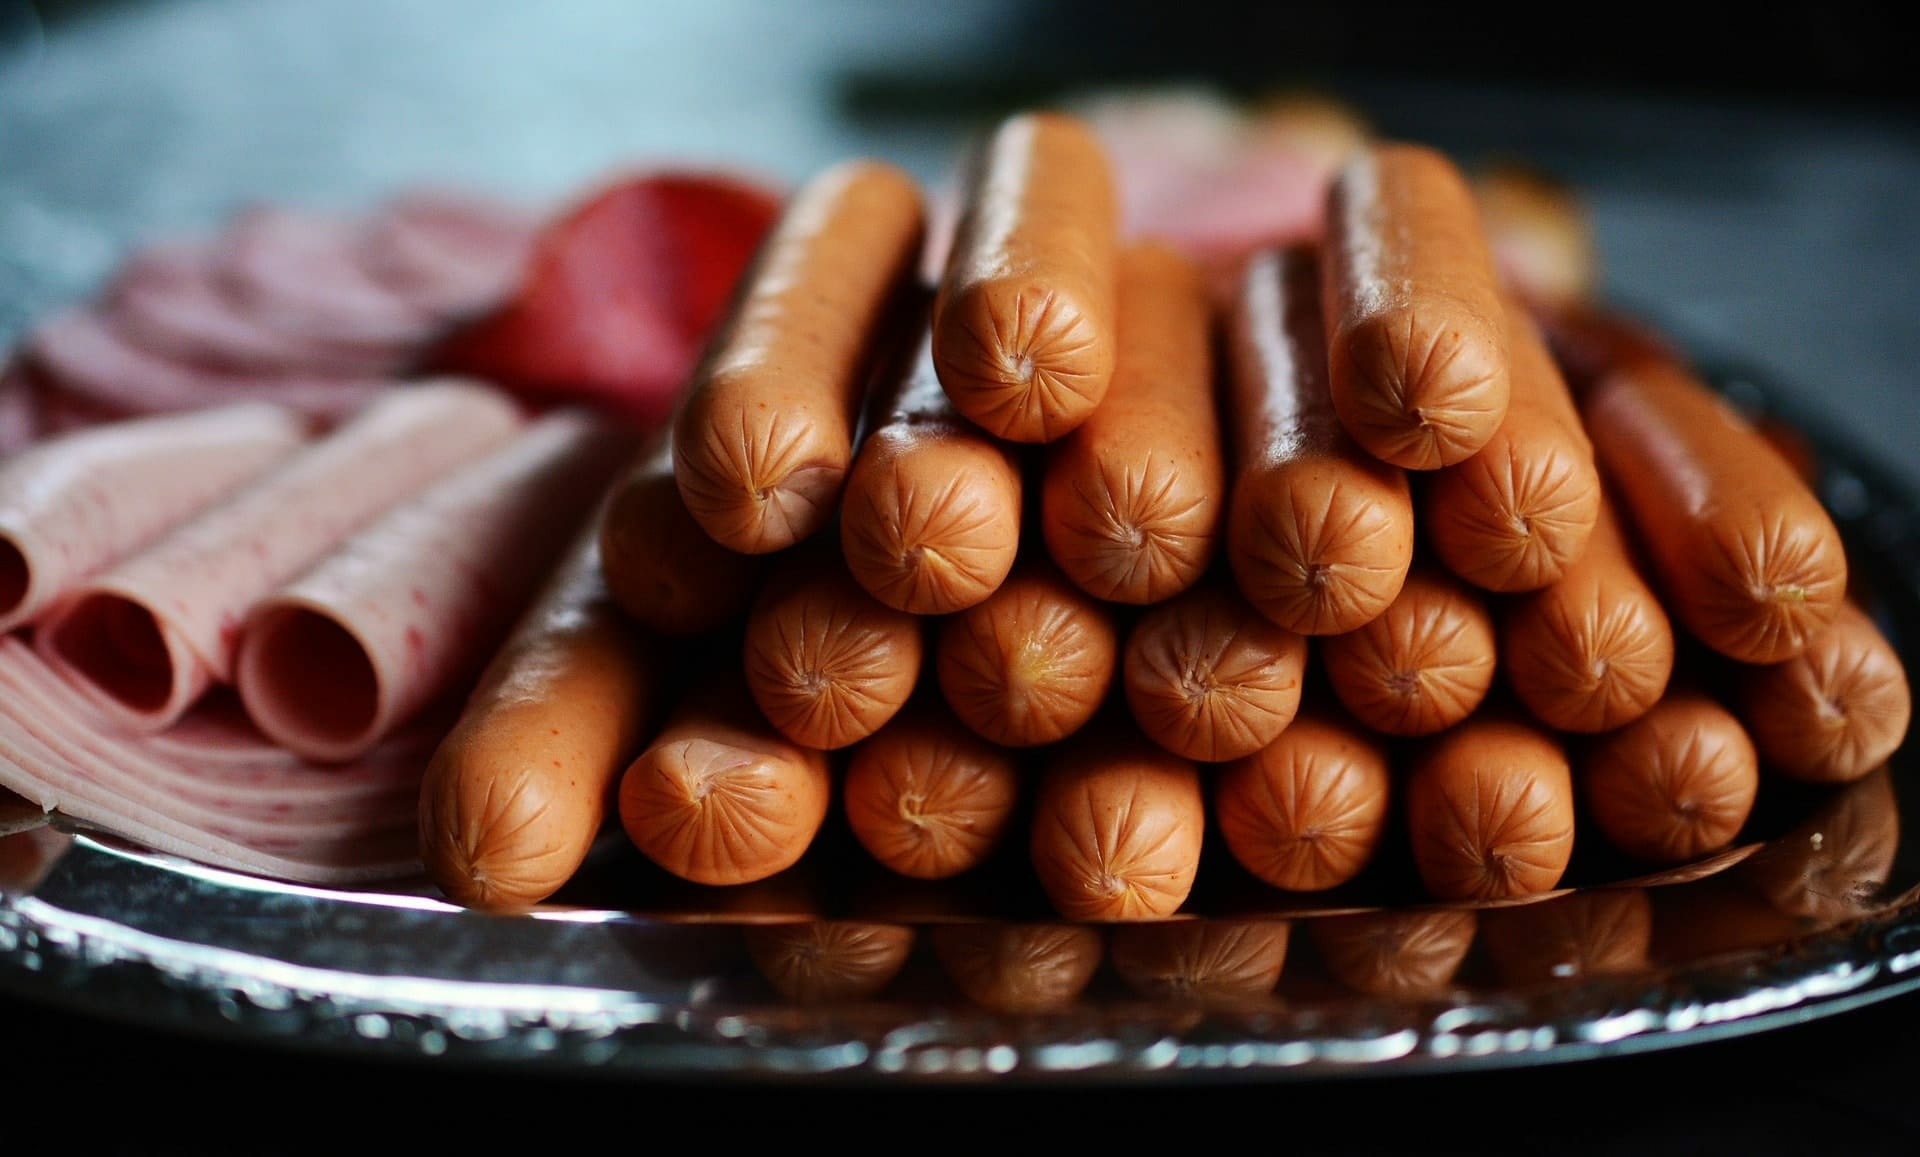 What Does Uncured Hot Dogs Mean